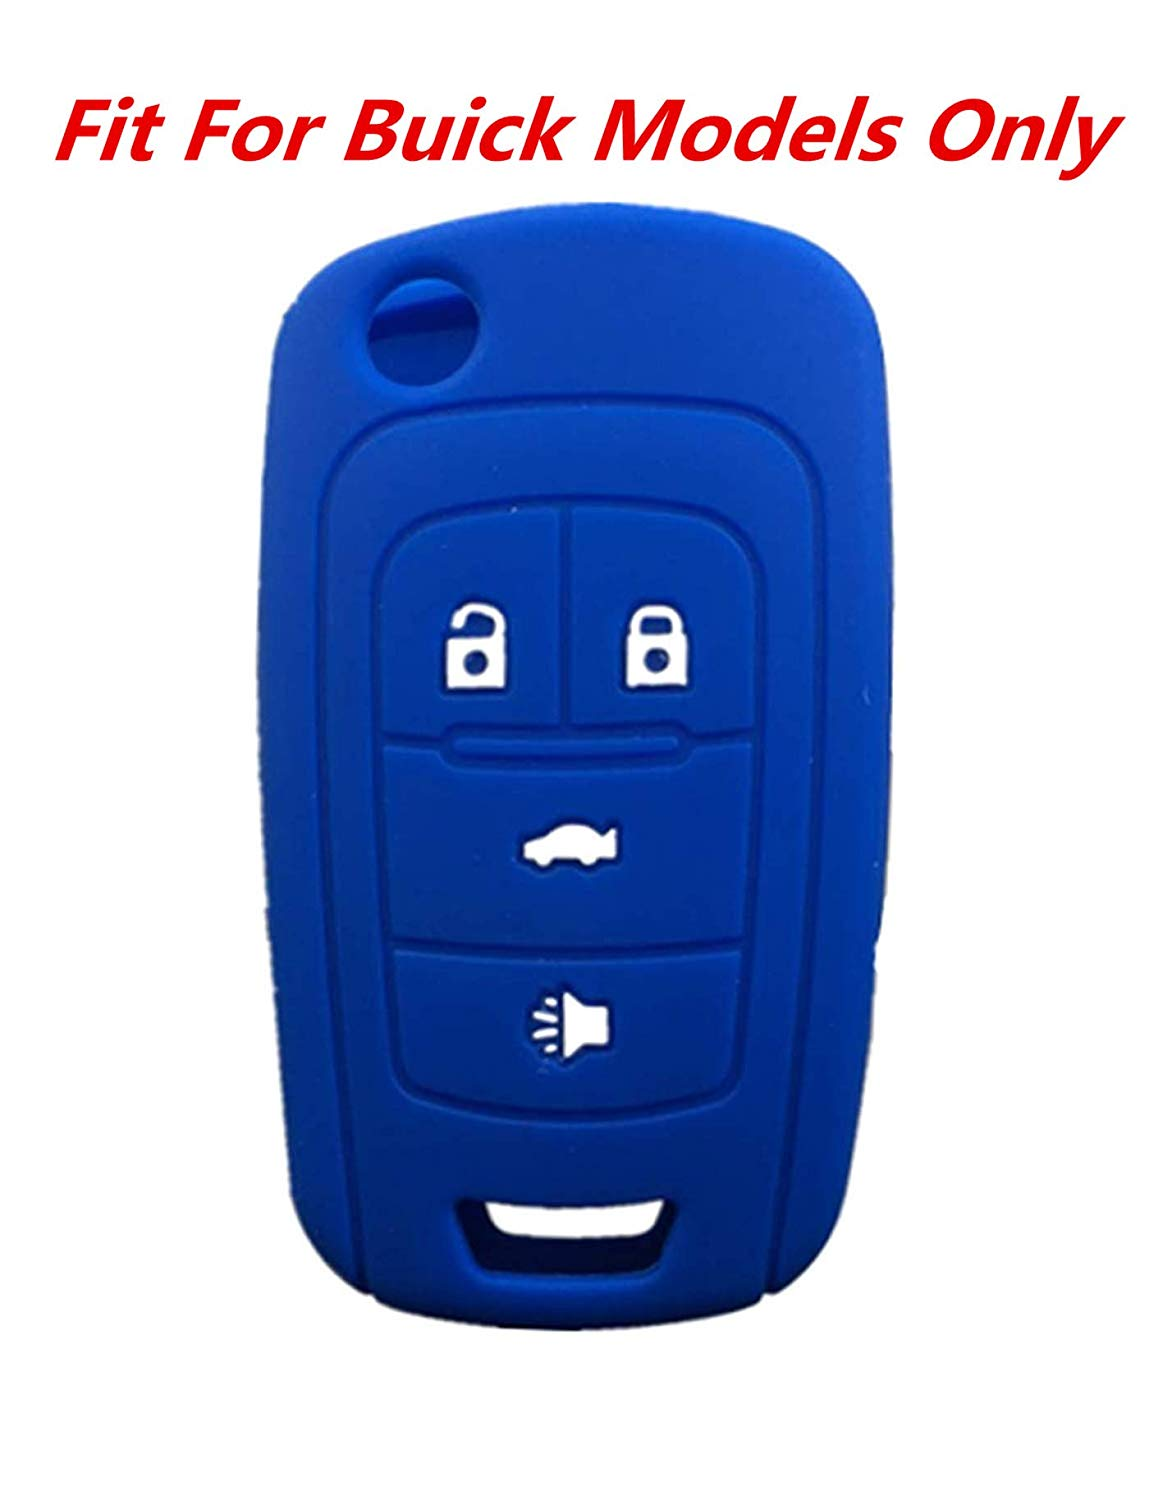 KAWIHEN Silicone Keyless Entry Smart Remote Key Fob Cover For 2013 2014 2015 2016 2017 2018 Buick Encore Enclave LaCrosse Regal Verano OHT01060512 V2T01060512 5461A-01060512 13500222 13501913